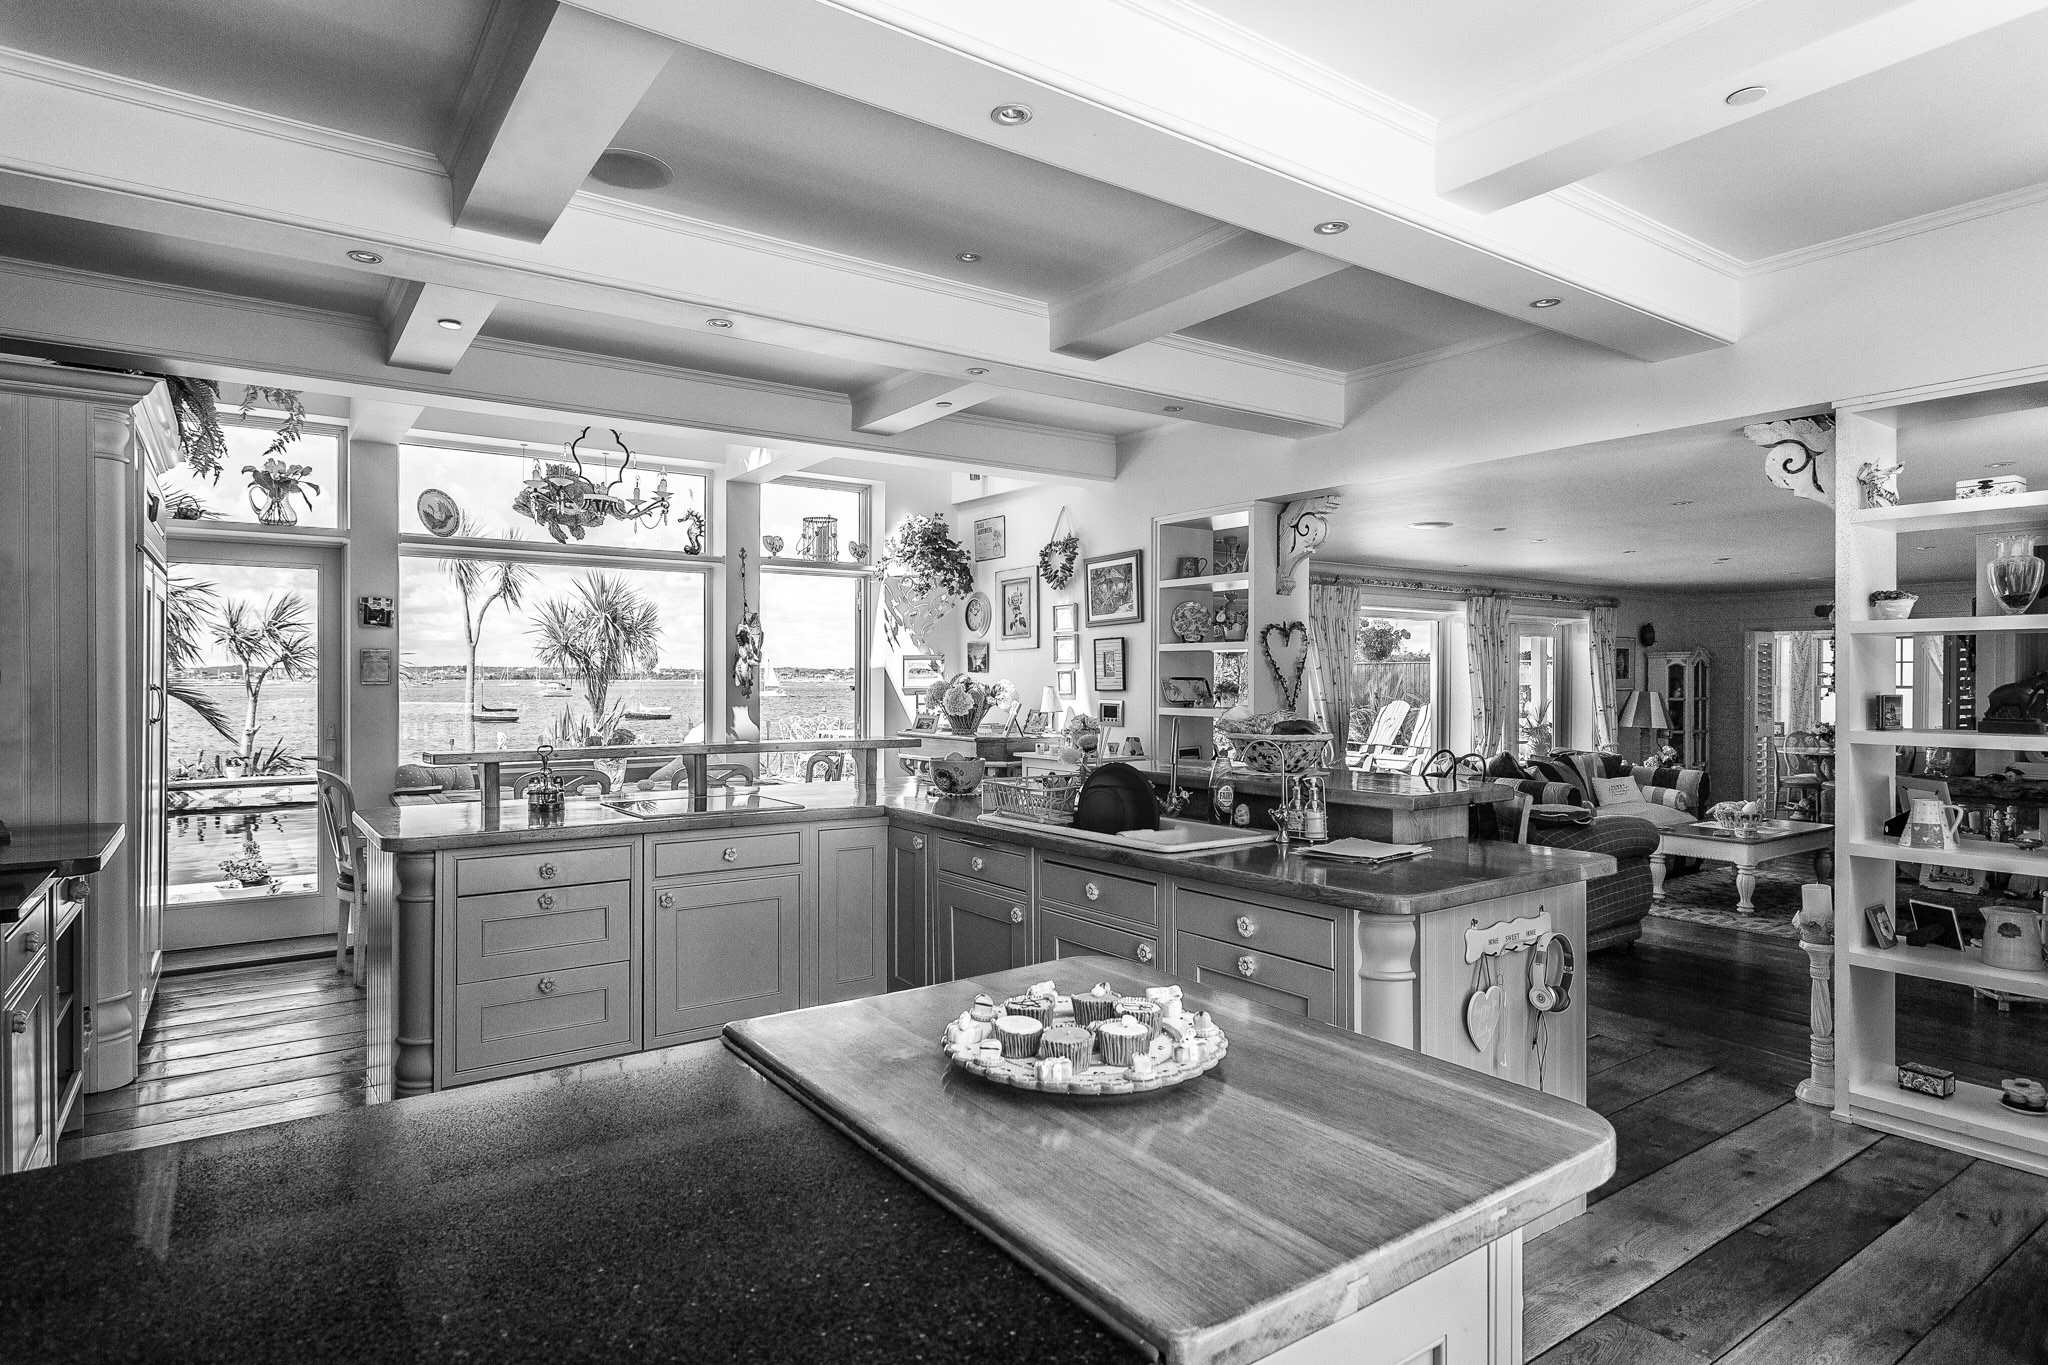 A lovely waterside kitchen with a view of Poole Harbour - the most expensive bit of estate agent photography I never did!